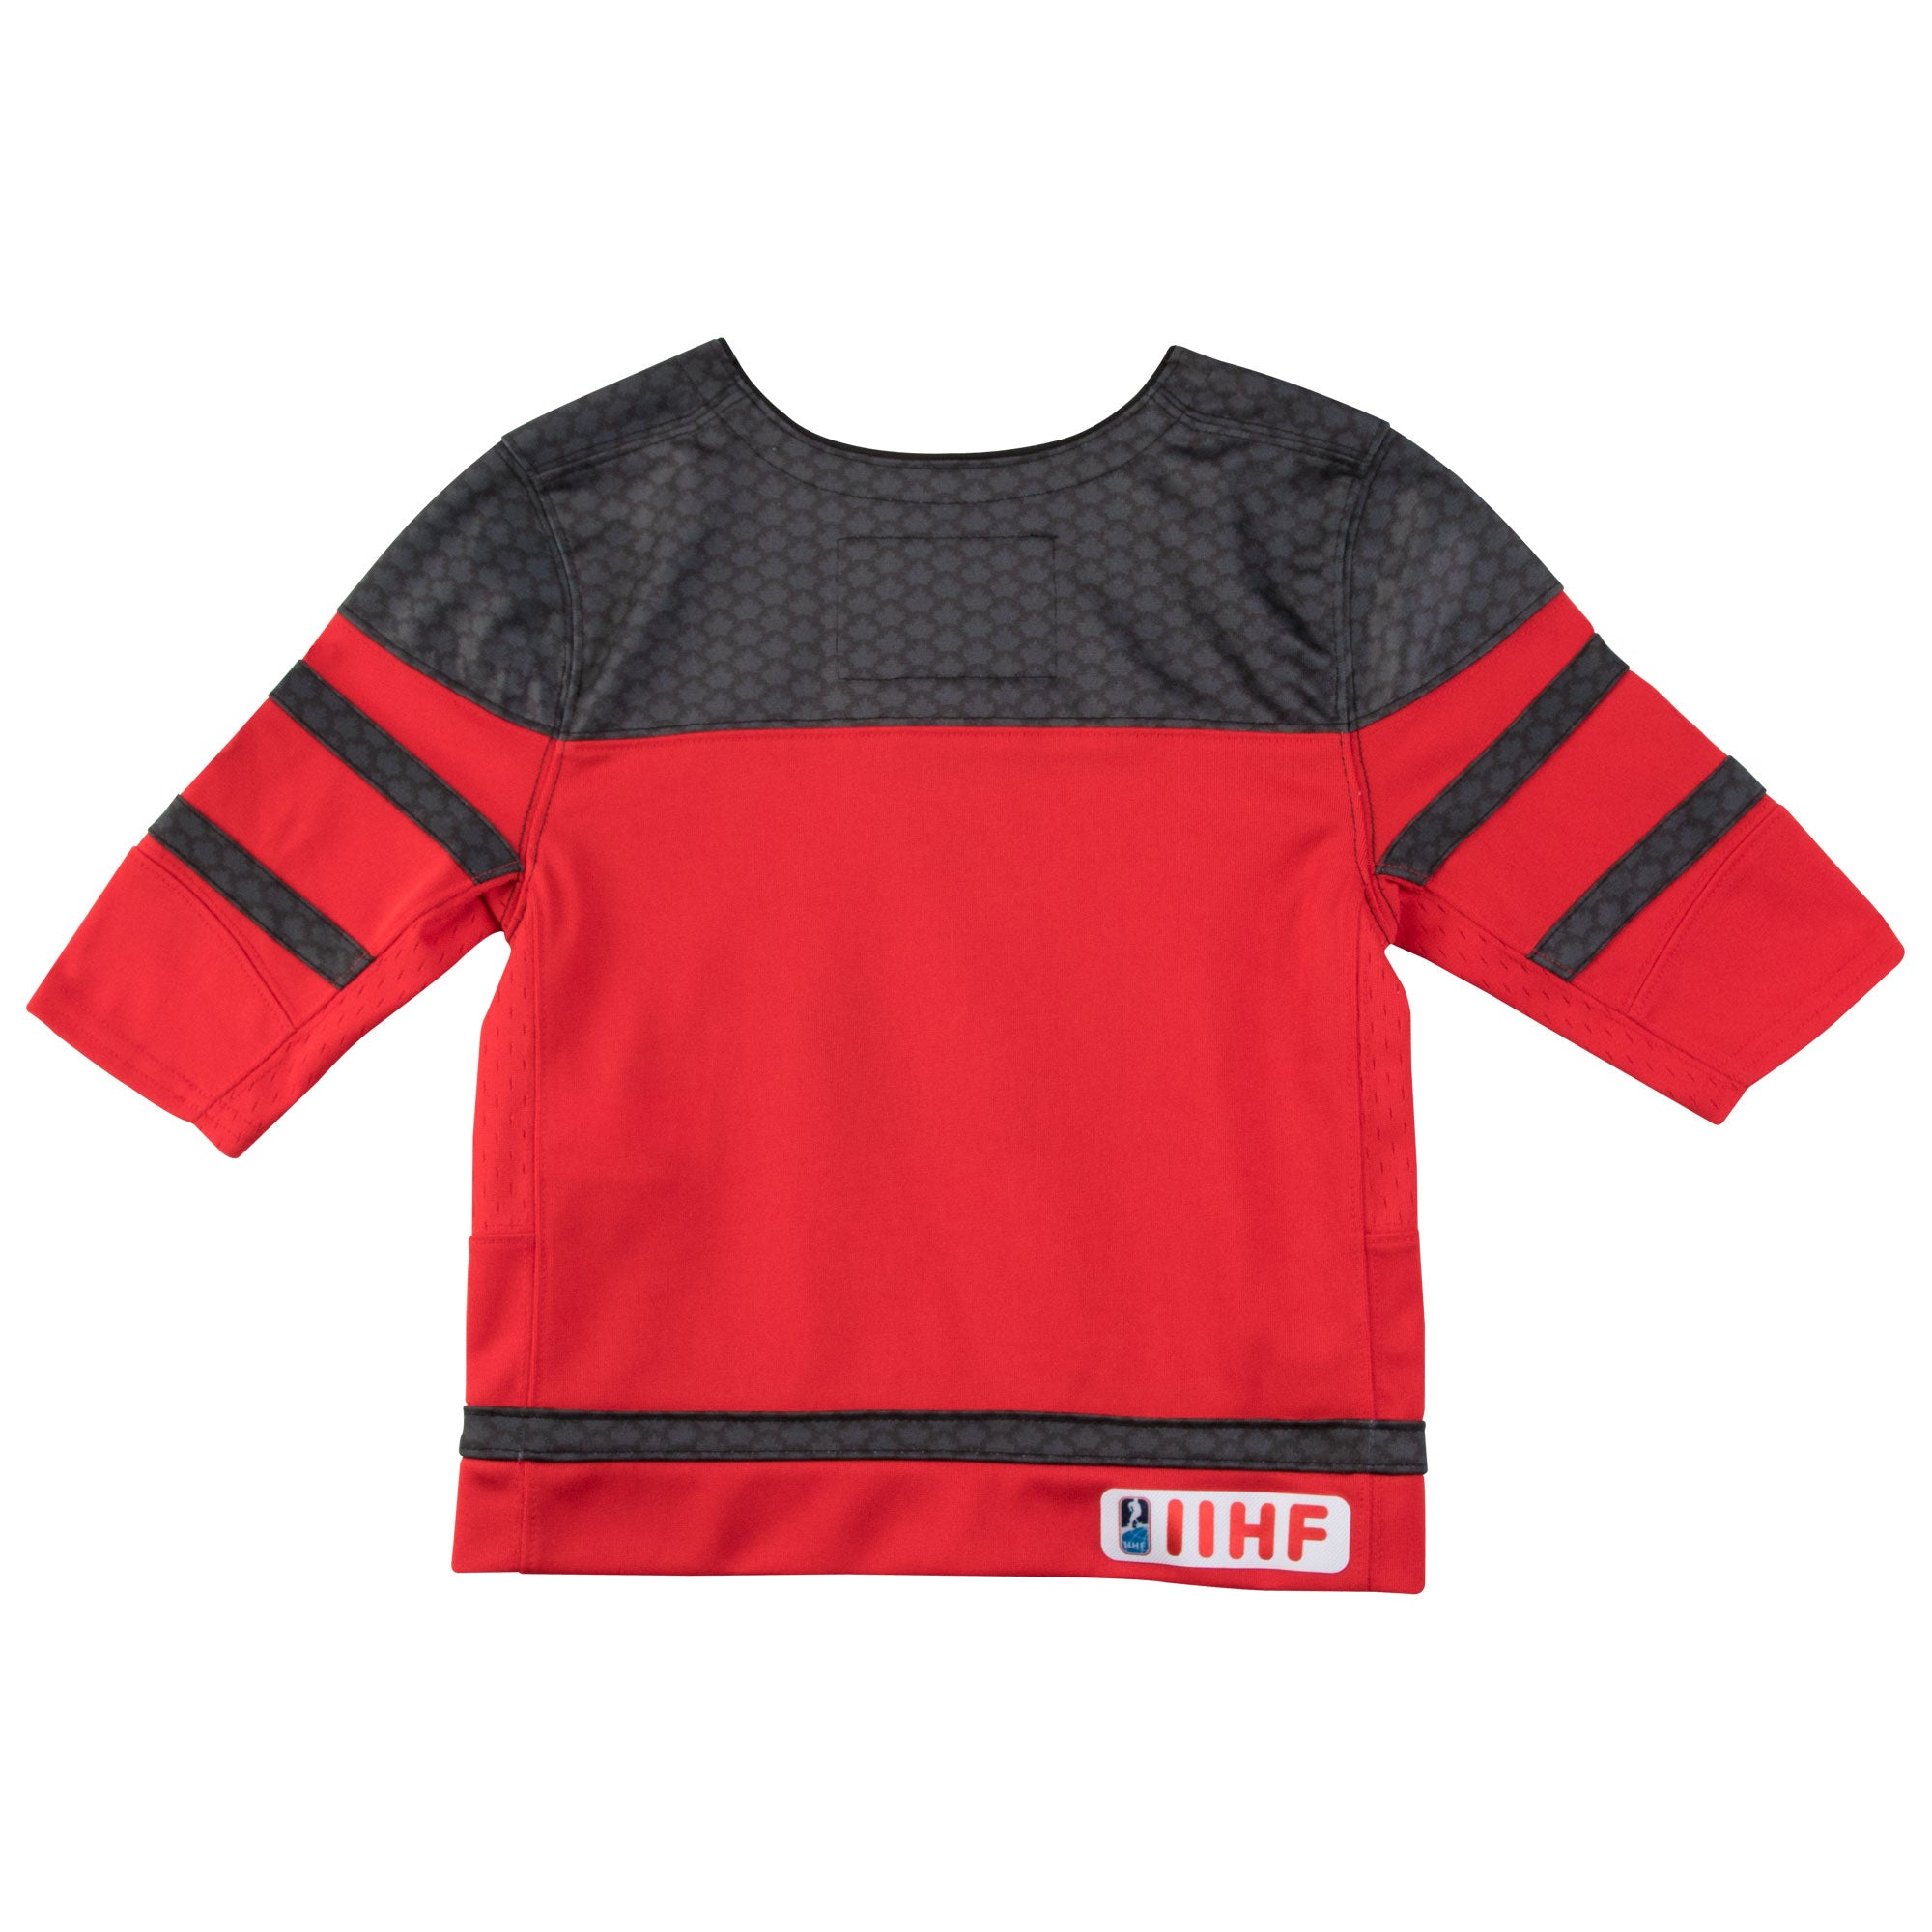 ... 2018 Team Canada Nike Hockey IIHF WJC Red Replica Infant Jersey -  Multiple Sizes - Bleacher